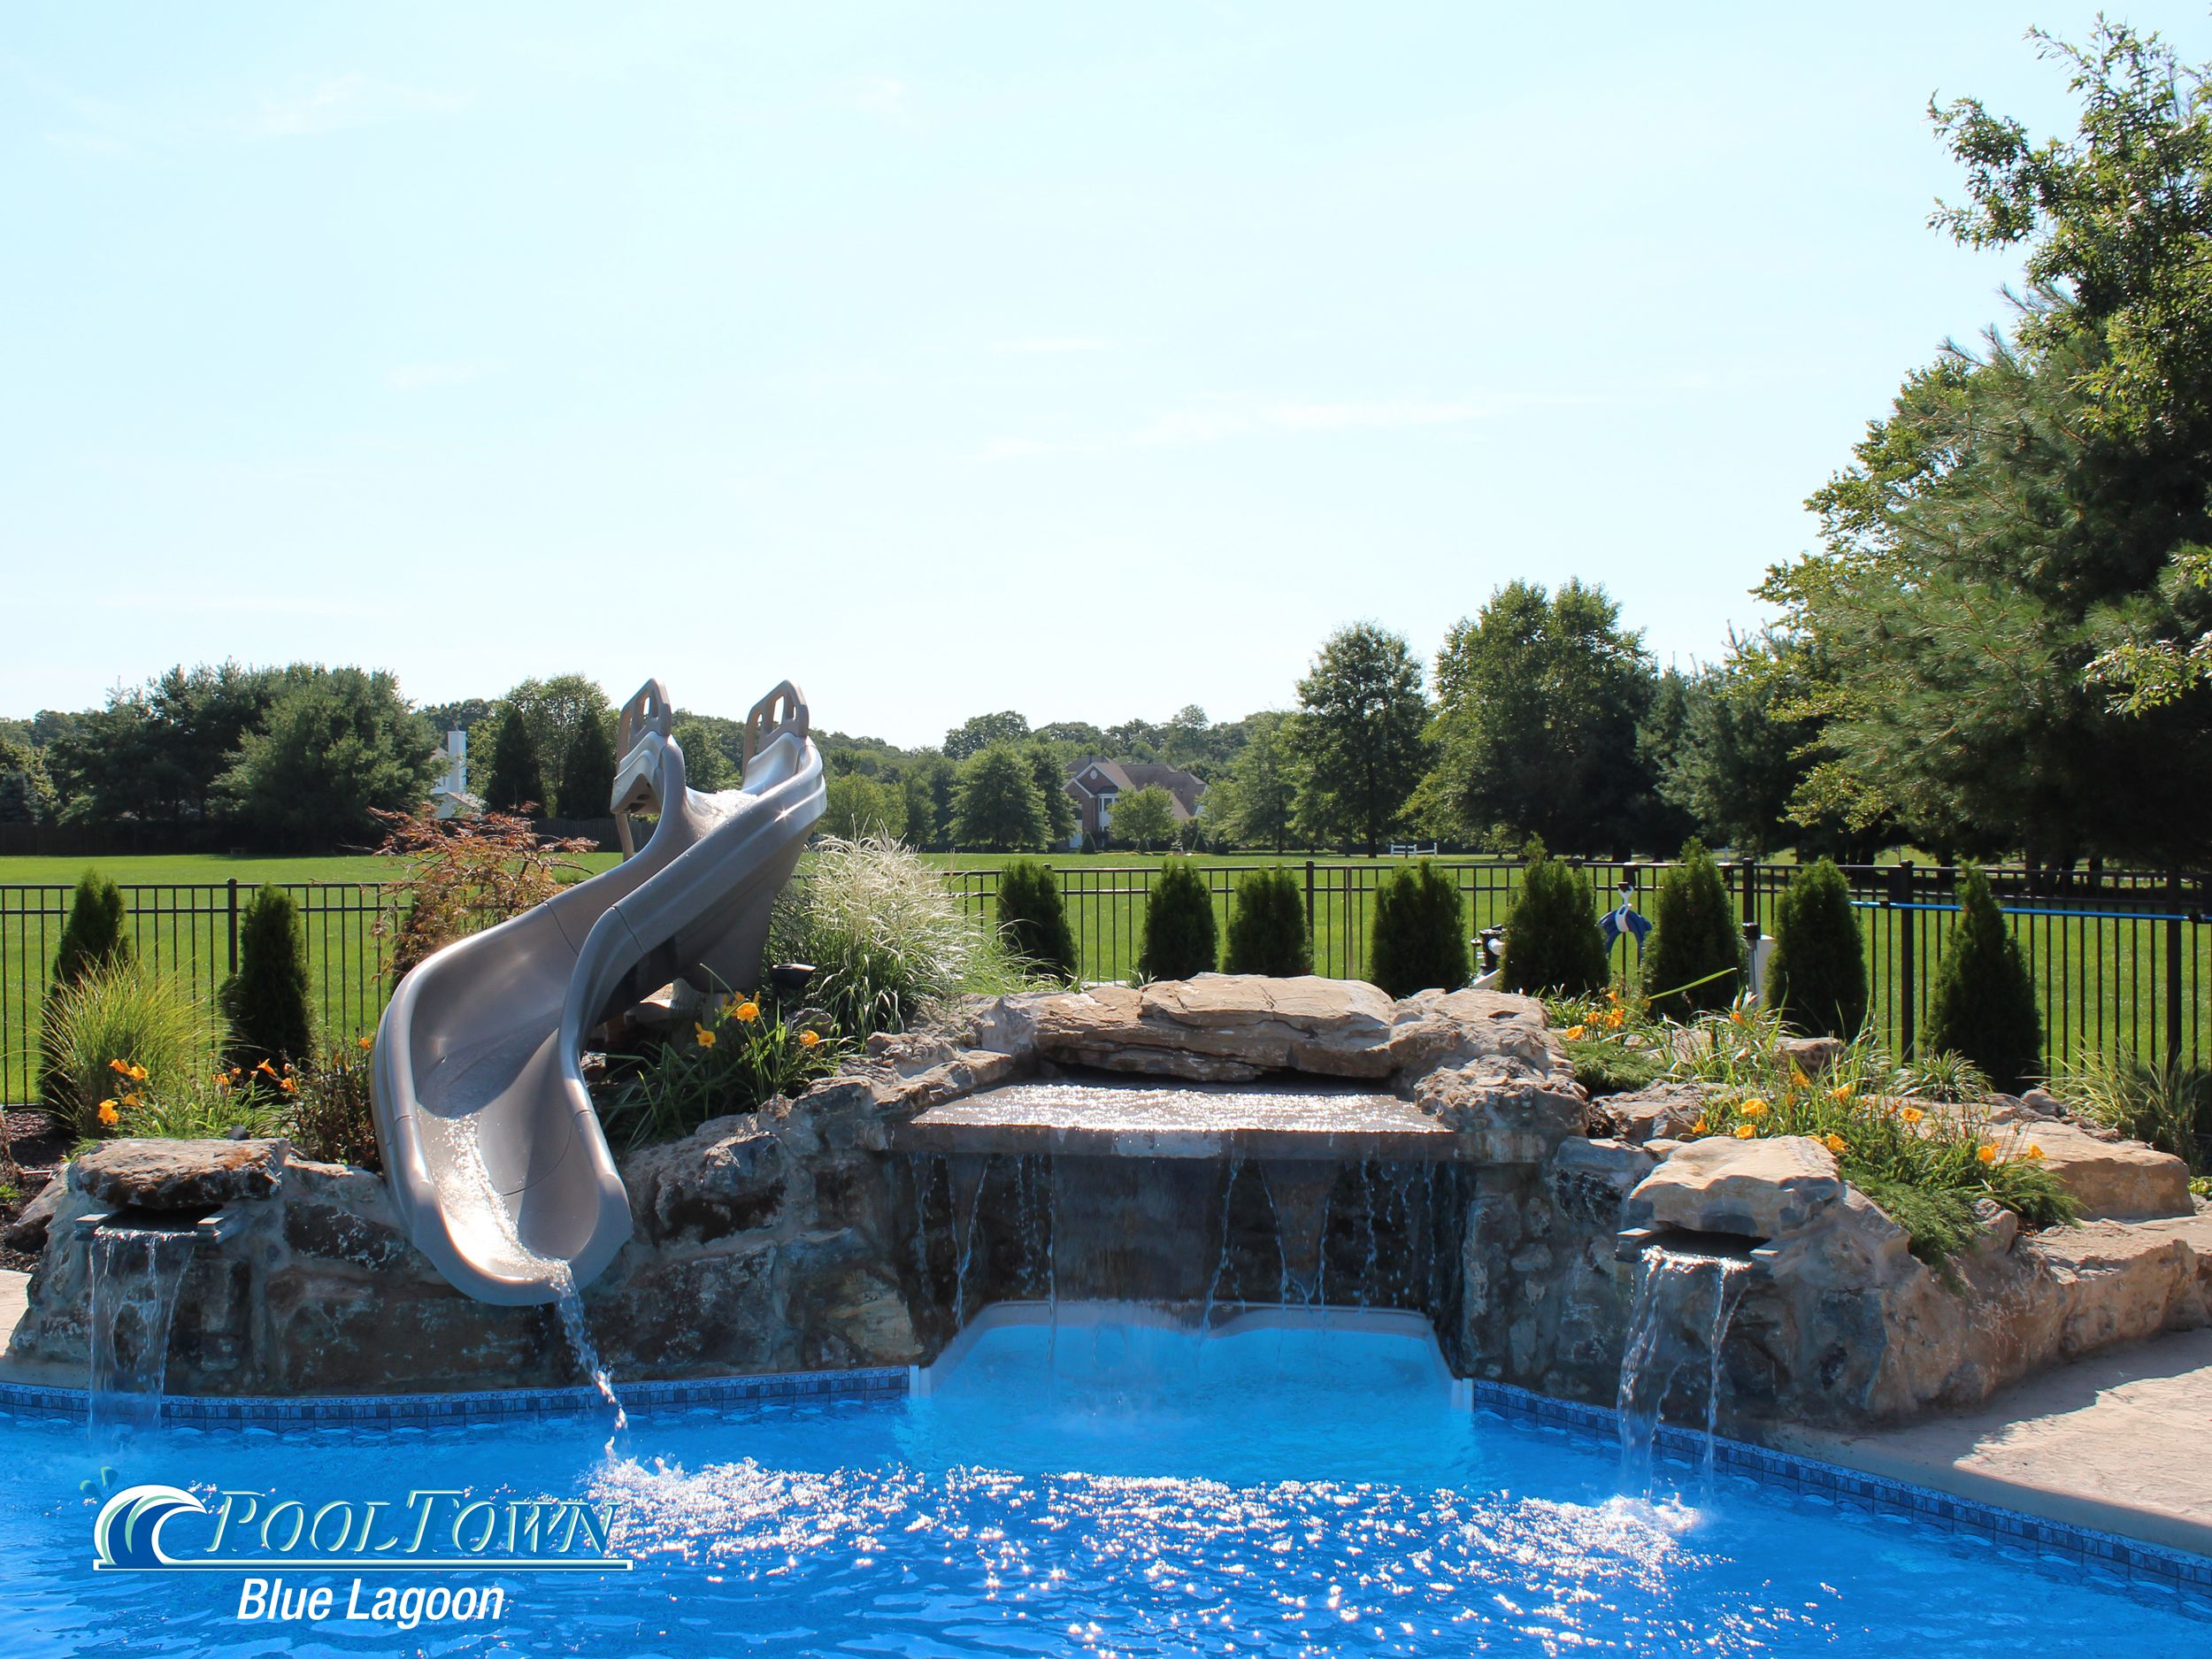 Pool Town NJ inground swimming pool with waterfall and